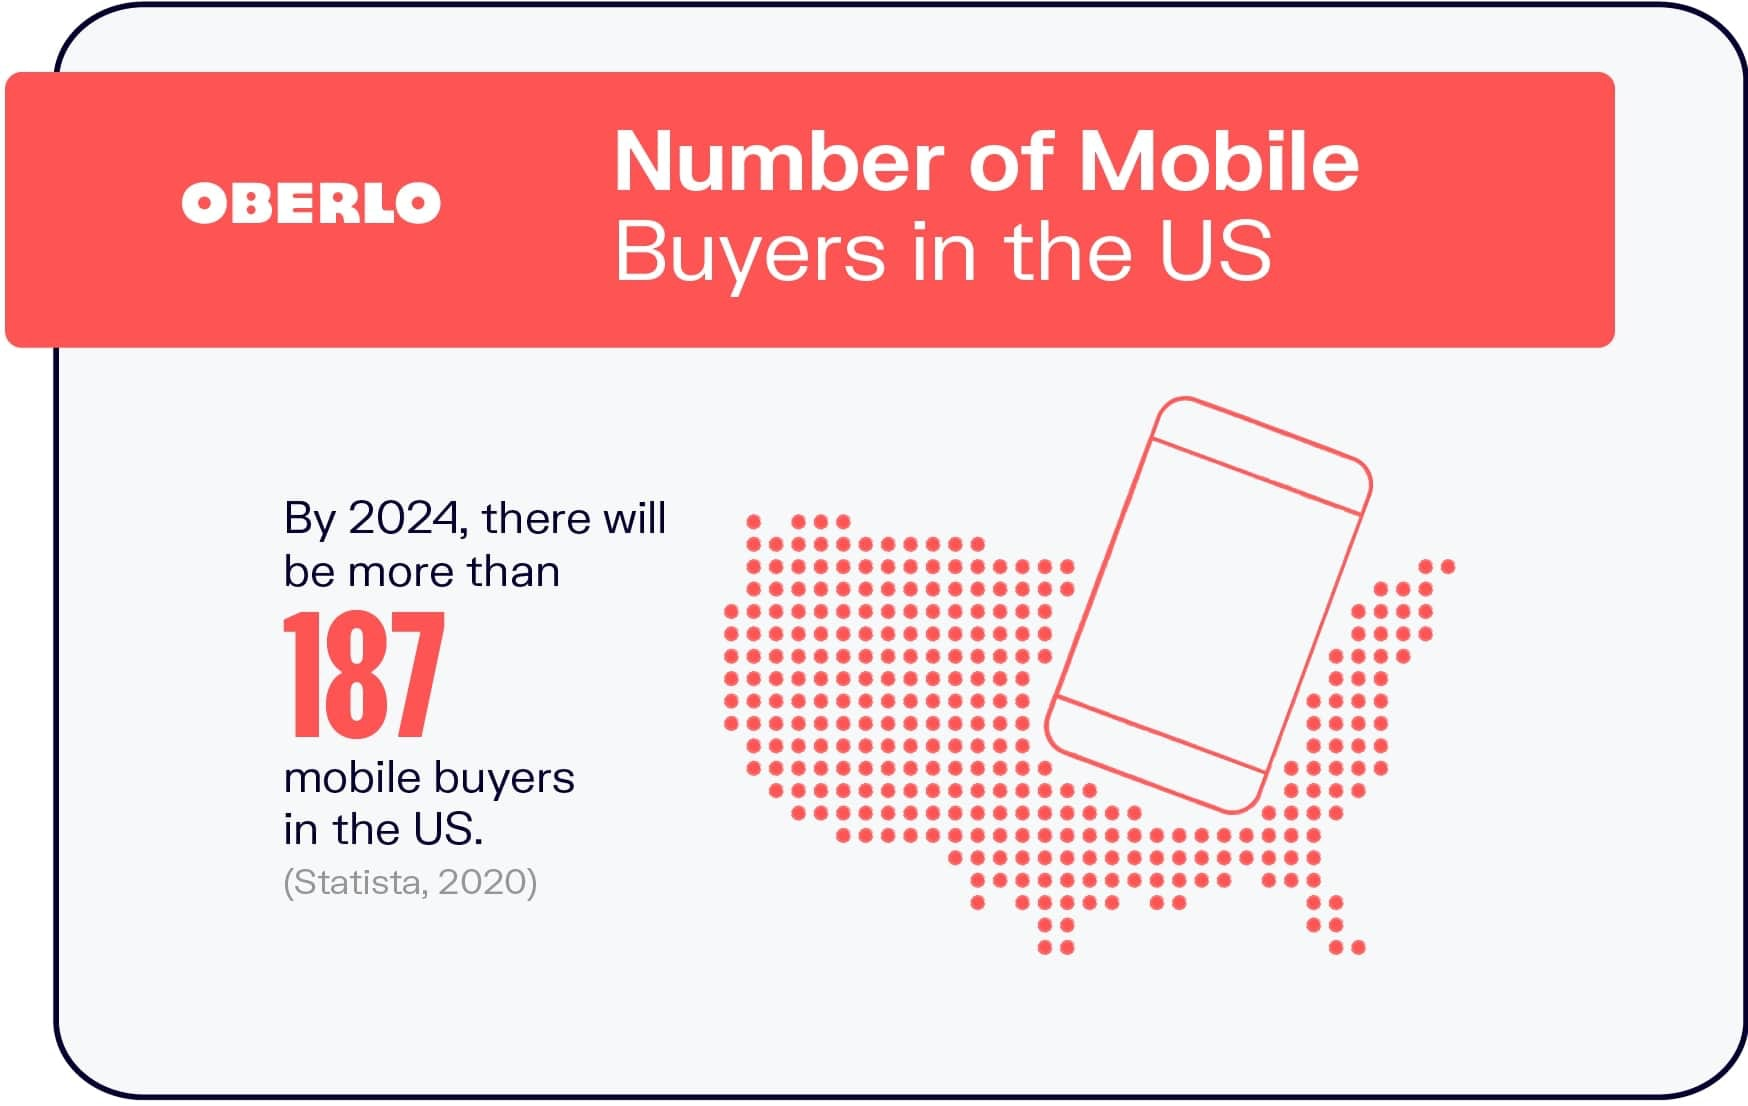 Number of Mobile Buyers in the US